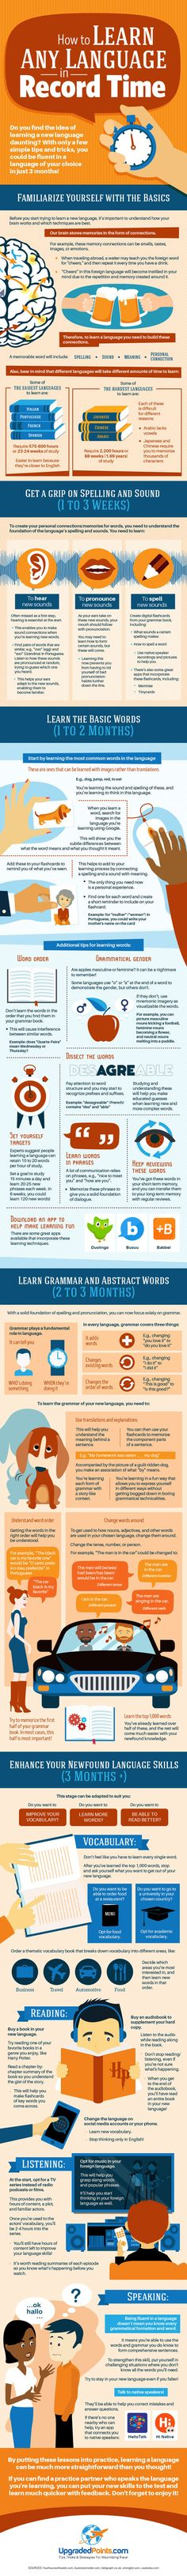 How To Learn Any Language In Record Time - #infographic